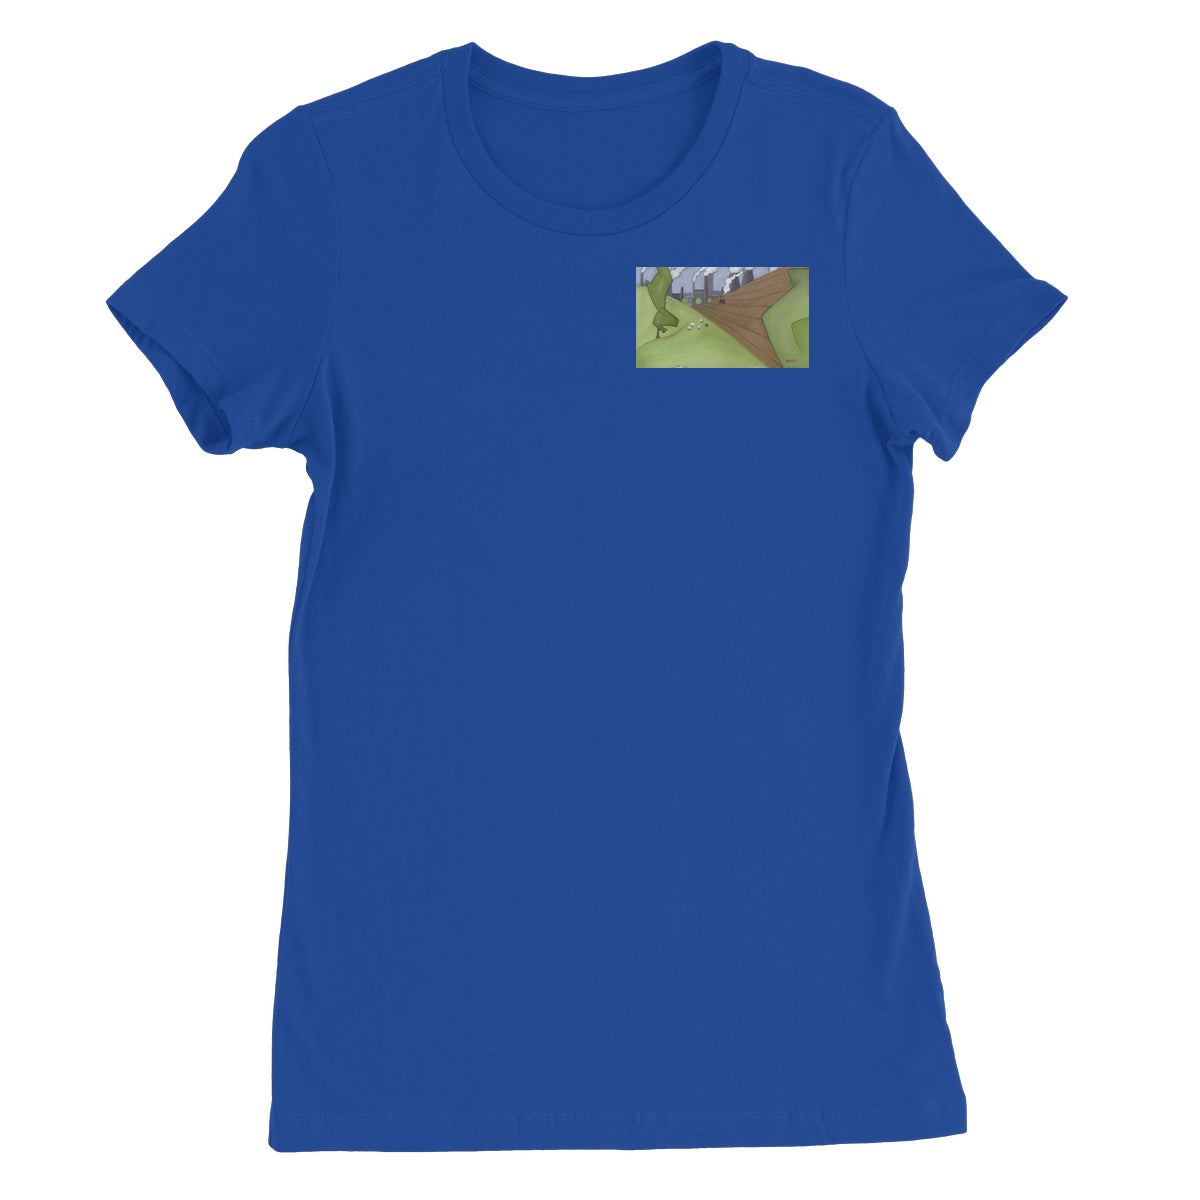 The Farm Women's Favourite T-Shirt